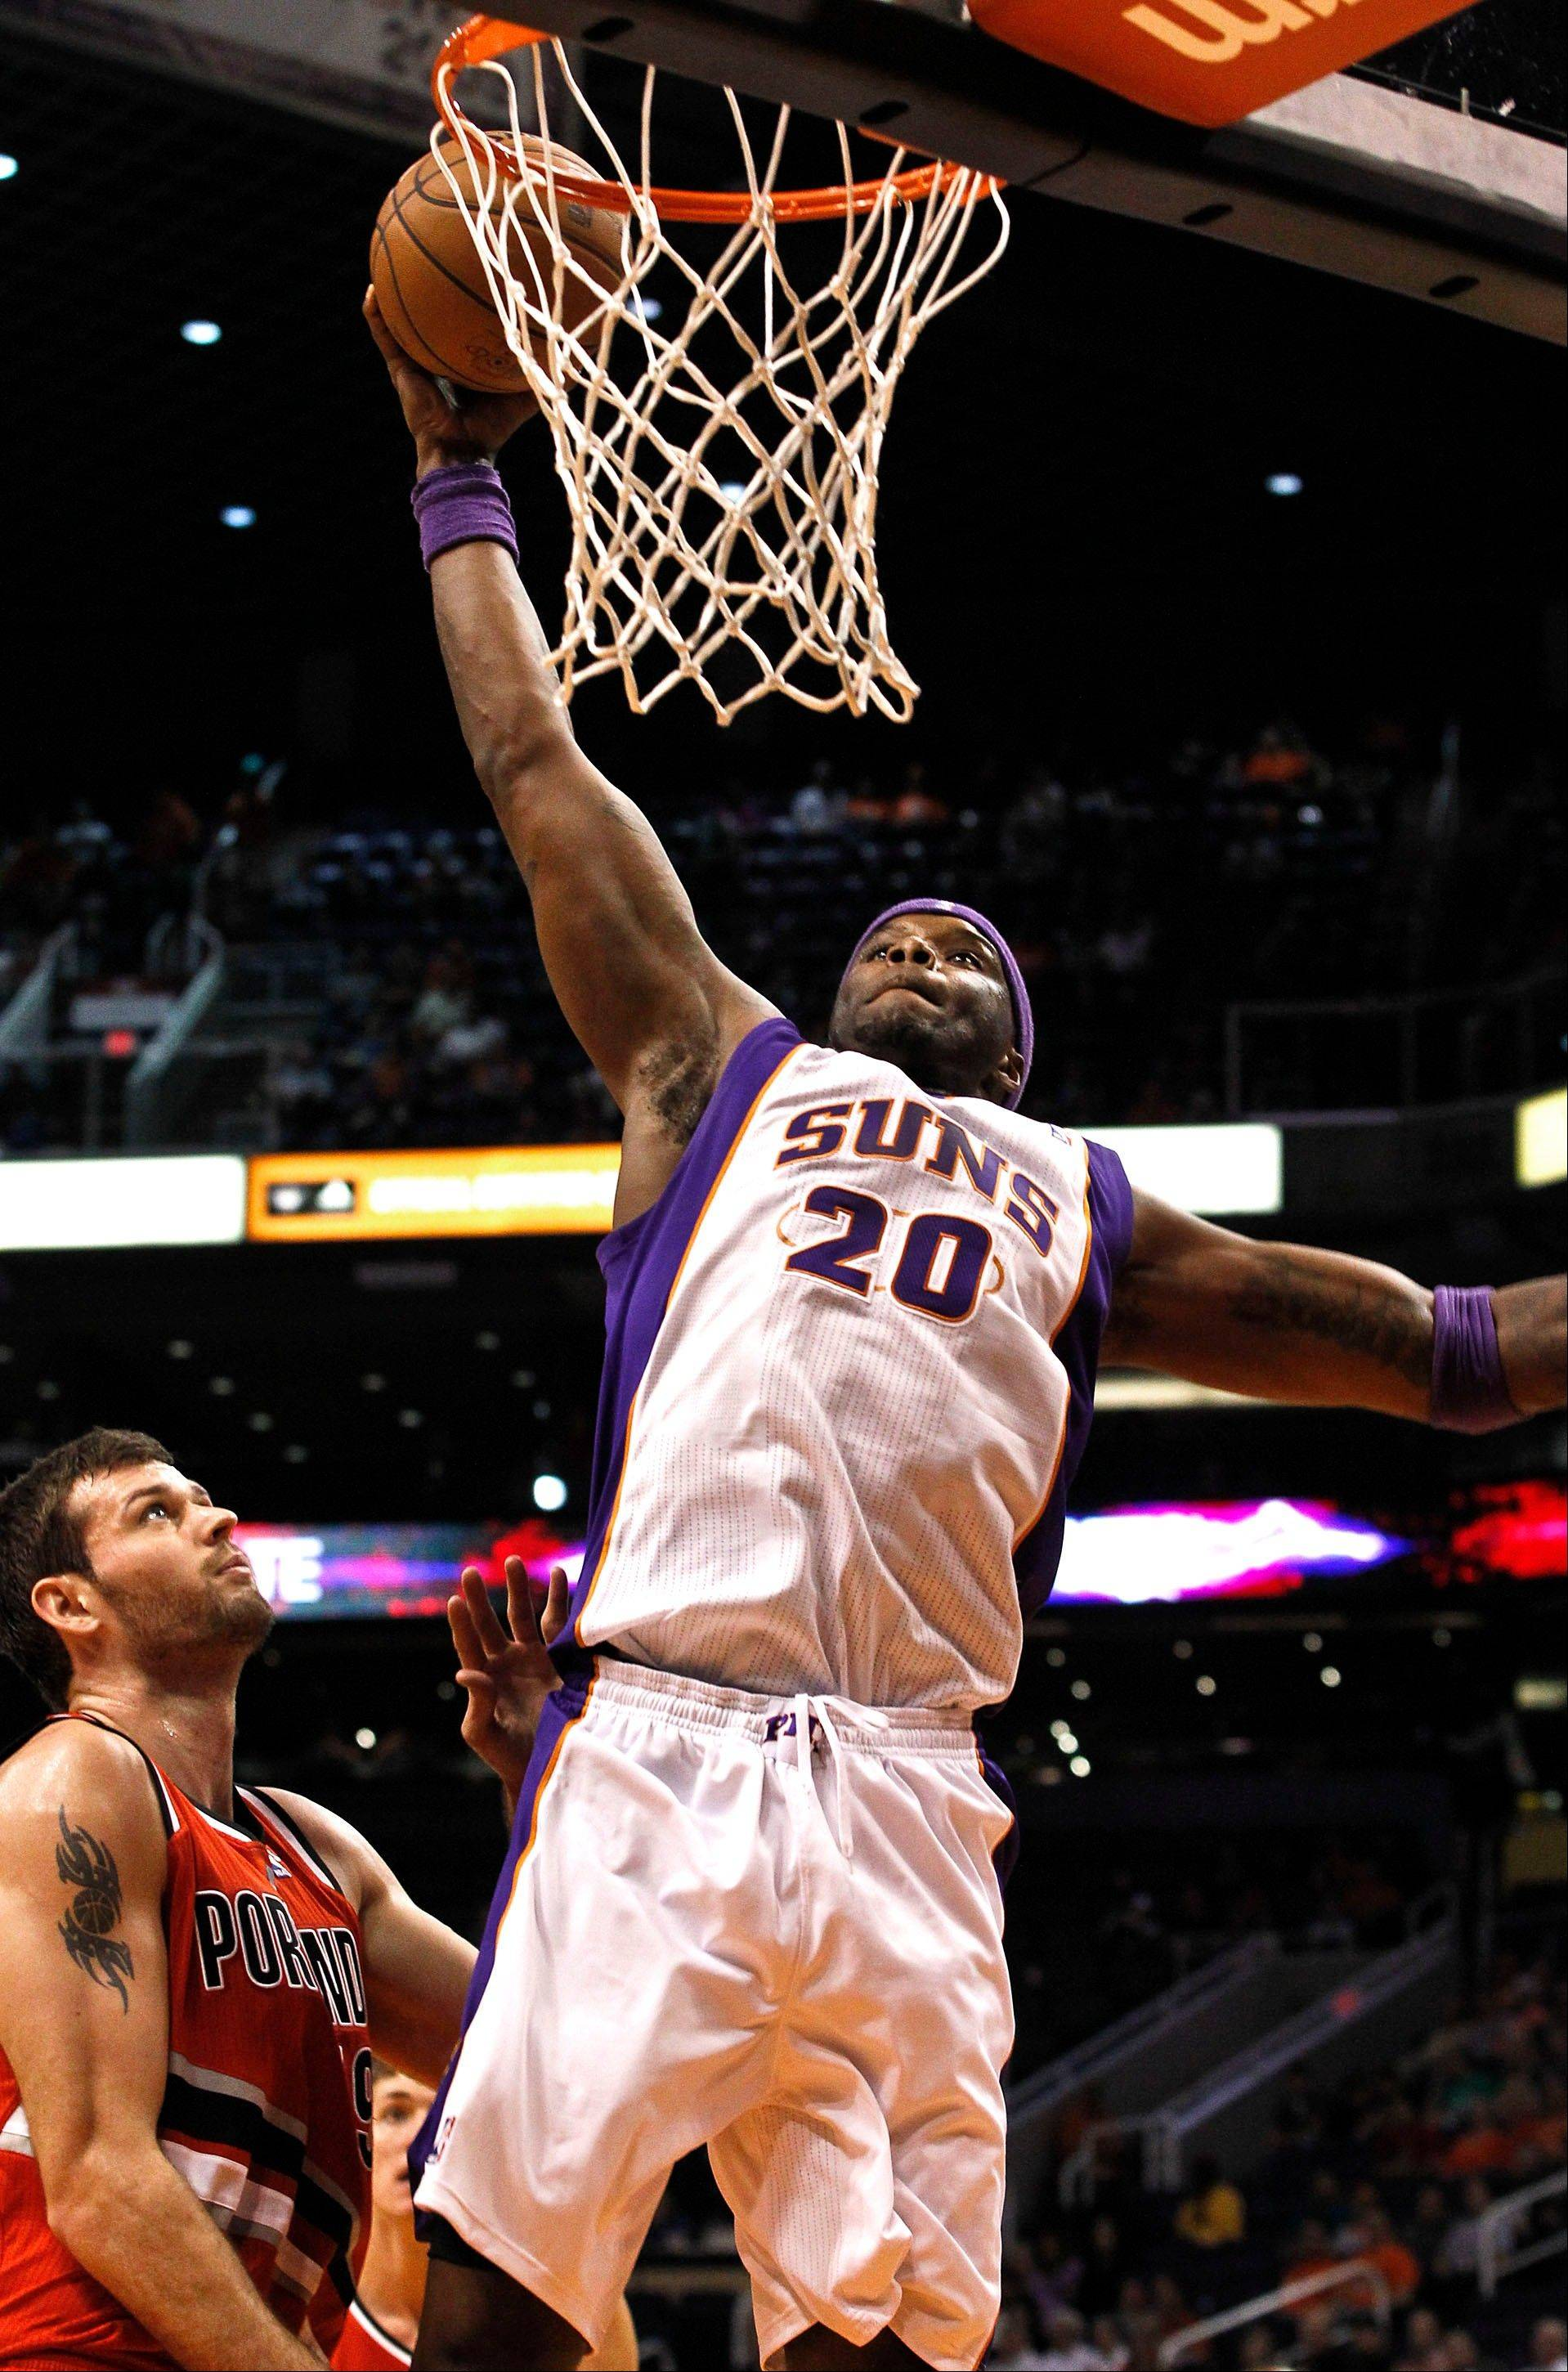 The Suns' Jermaine O'Neal (20) goes in for a dunk as Portland's Joel Freeland watches during the second half Wednesday in Phoenix.